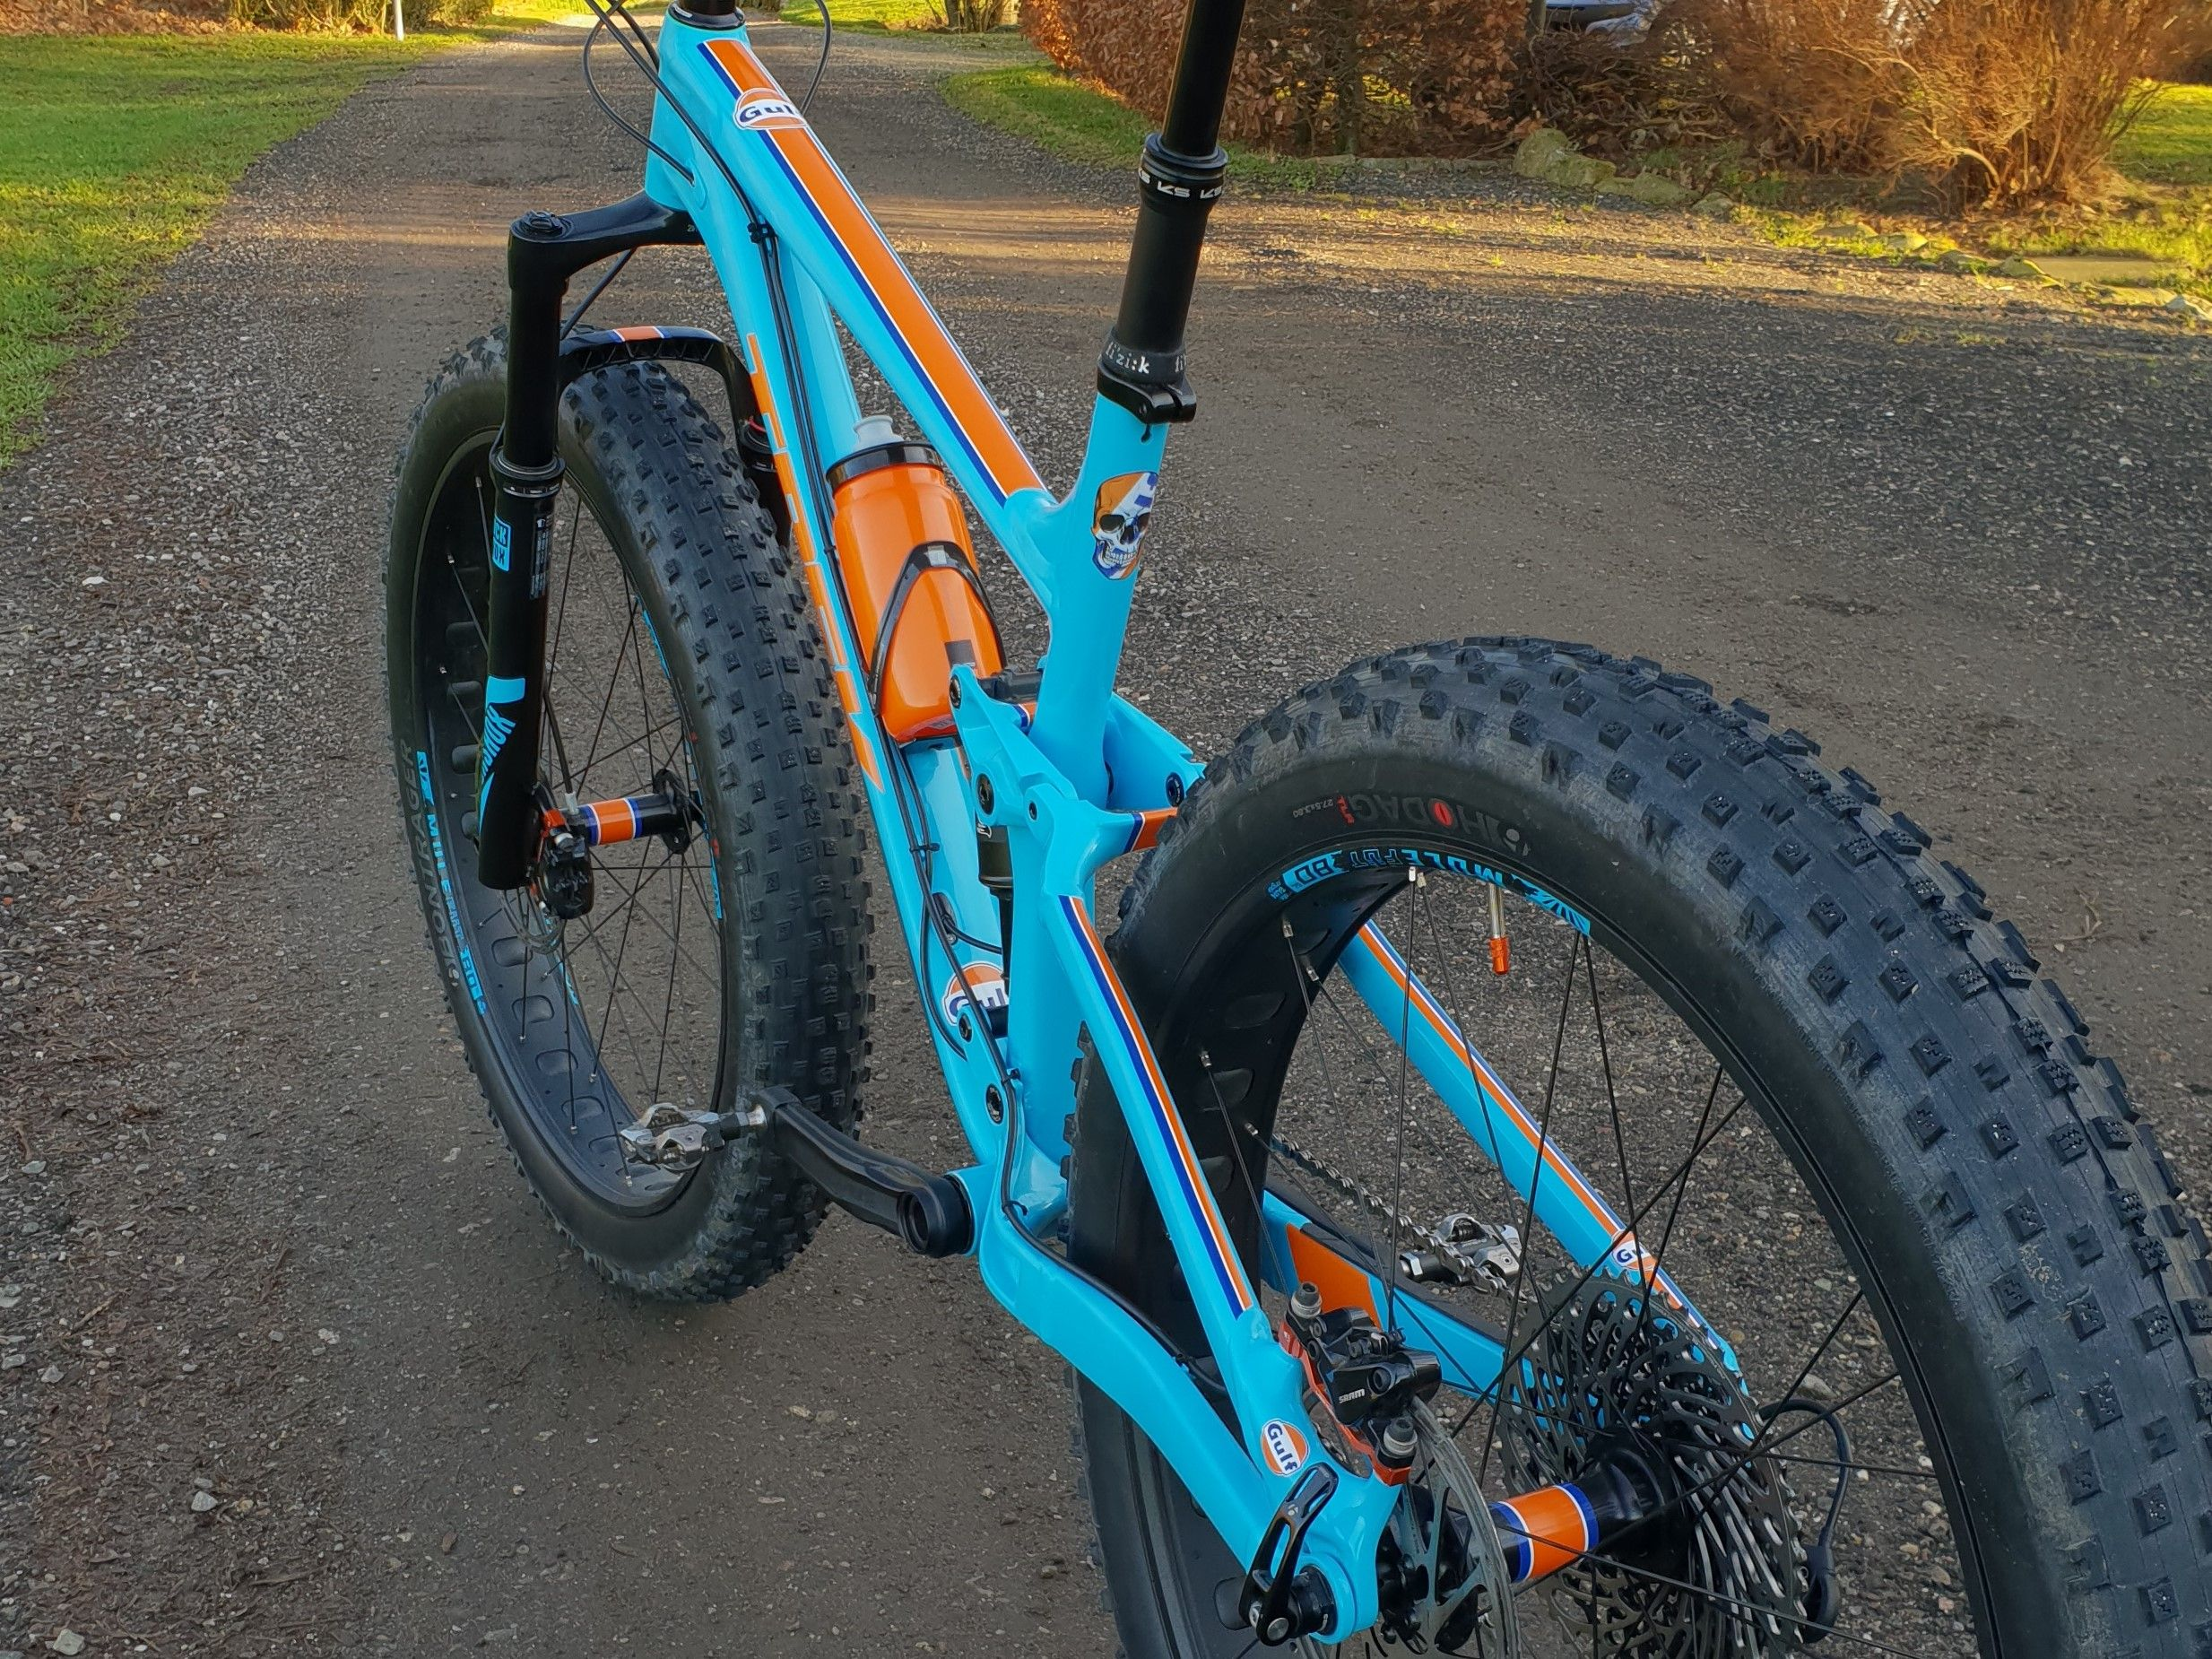 Fin Trek Farley EX 8 Gulf Fat Bike Project | Gulf Racing Color Fat Bike KI-09